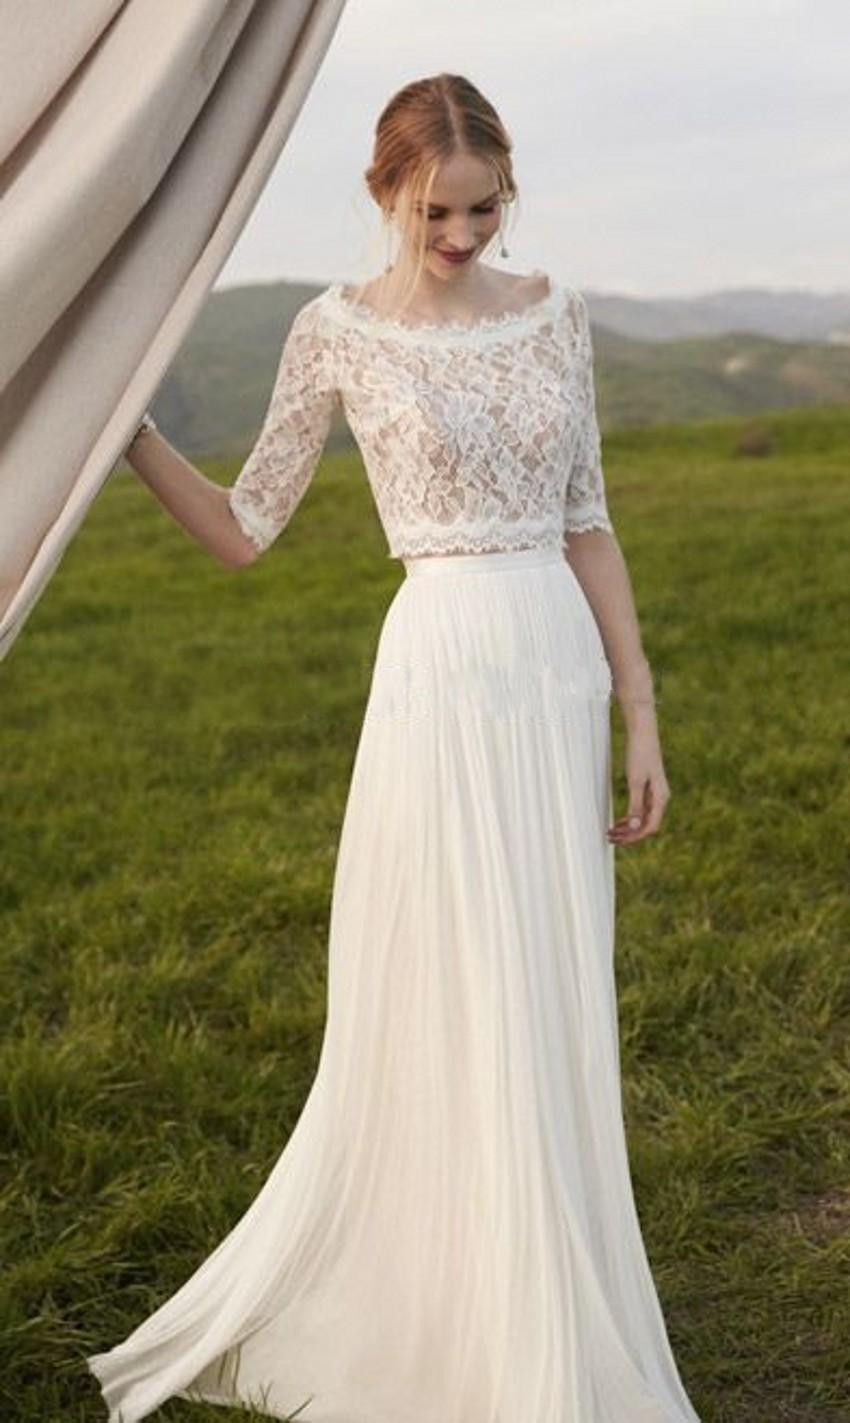 Simple fall winter style two pieces beach wedding dress for Winter wedding guest dresses with sleeves